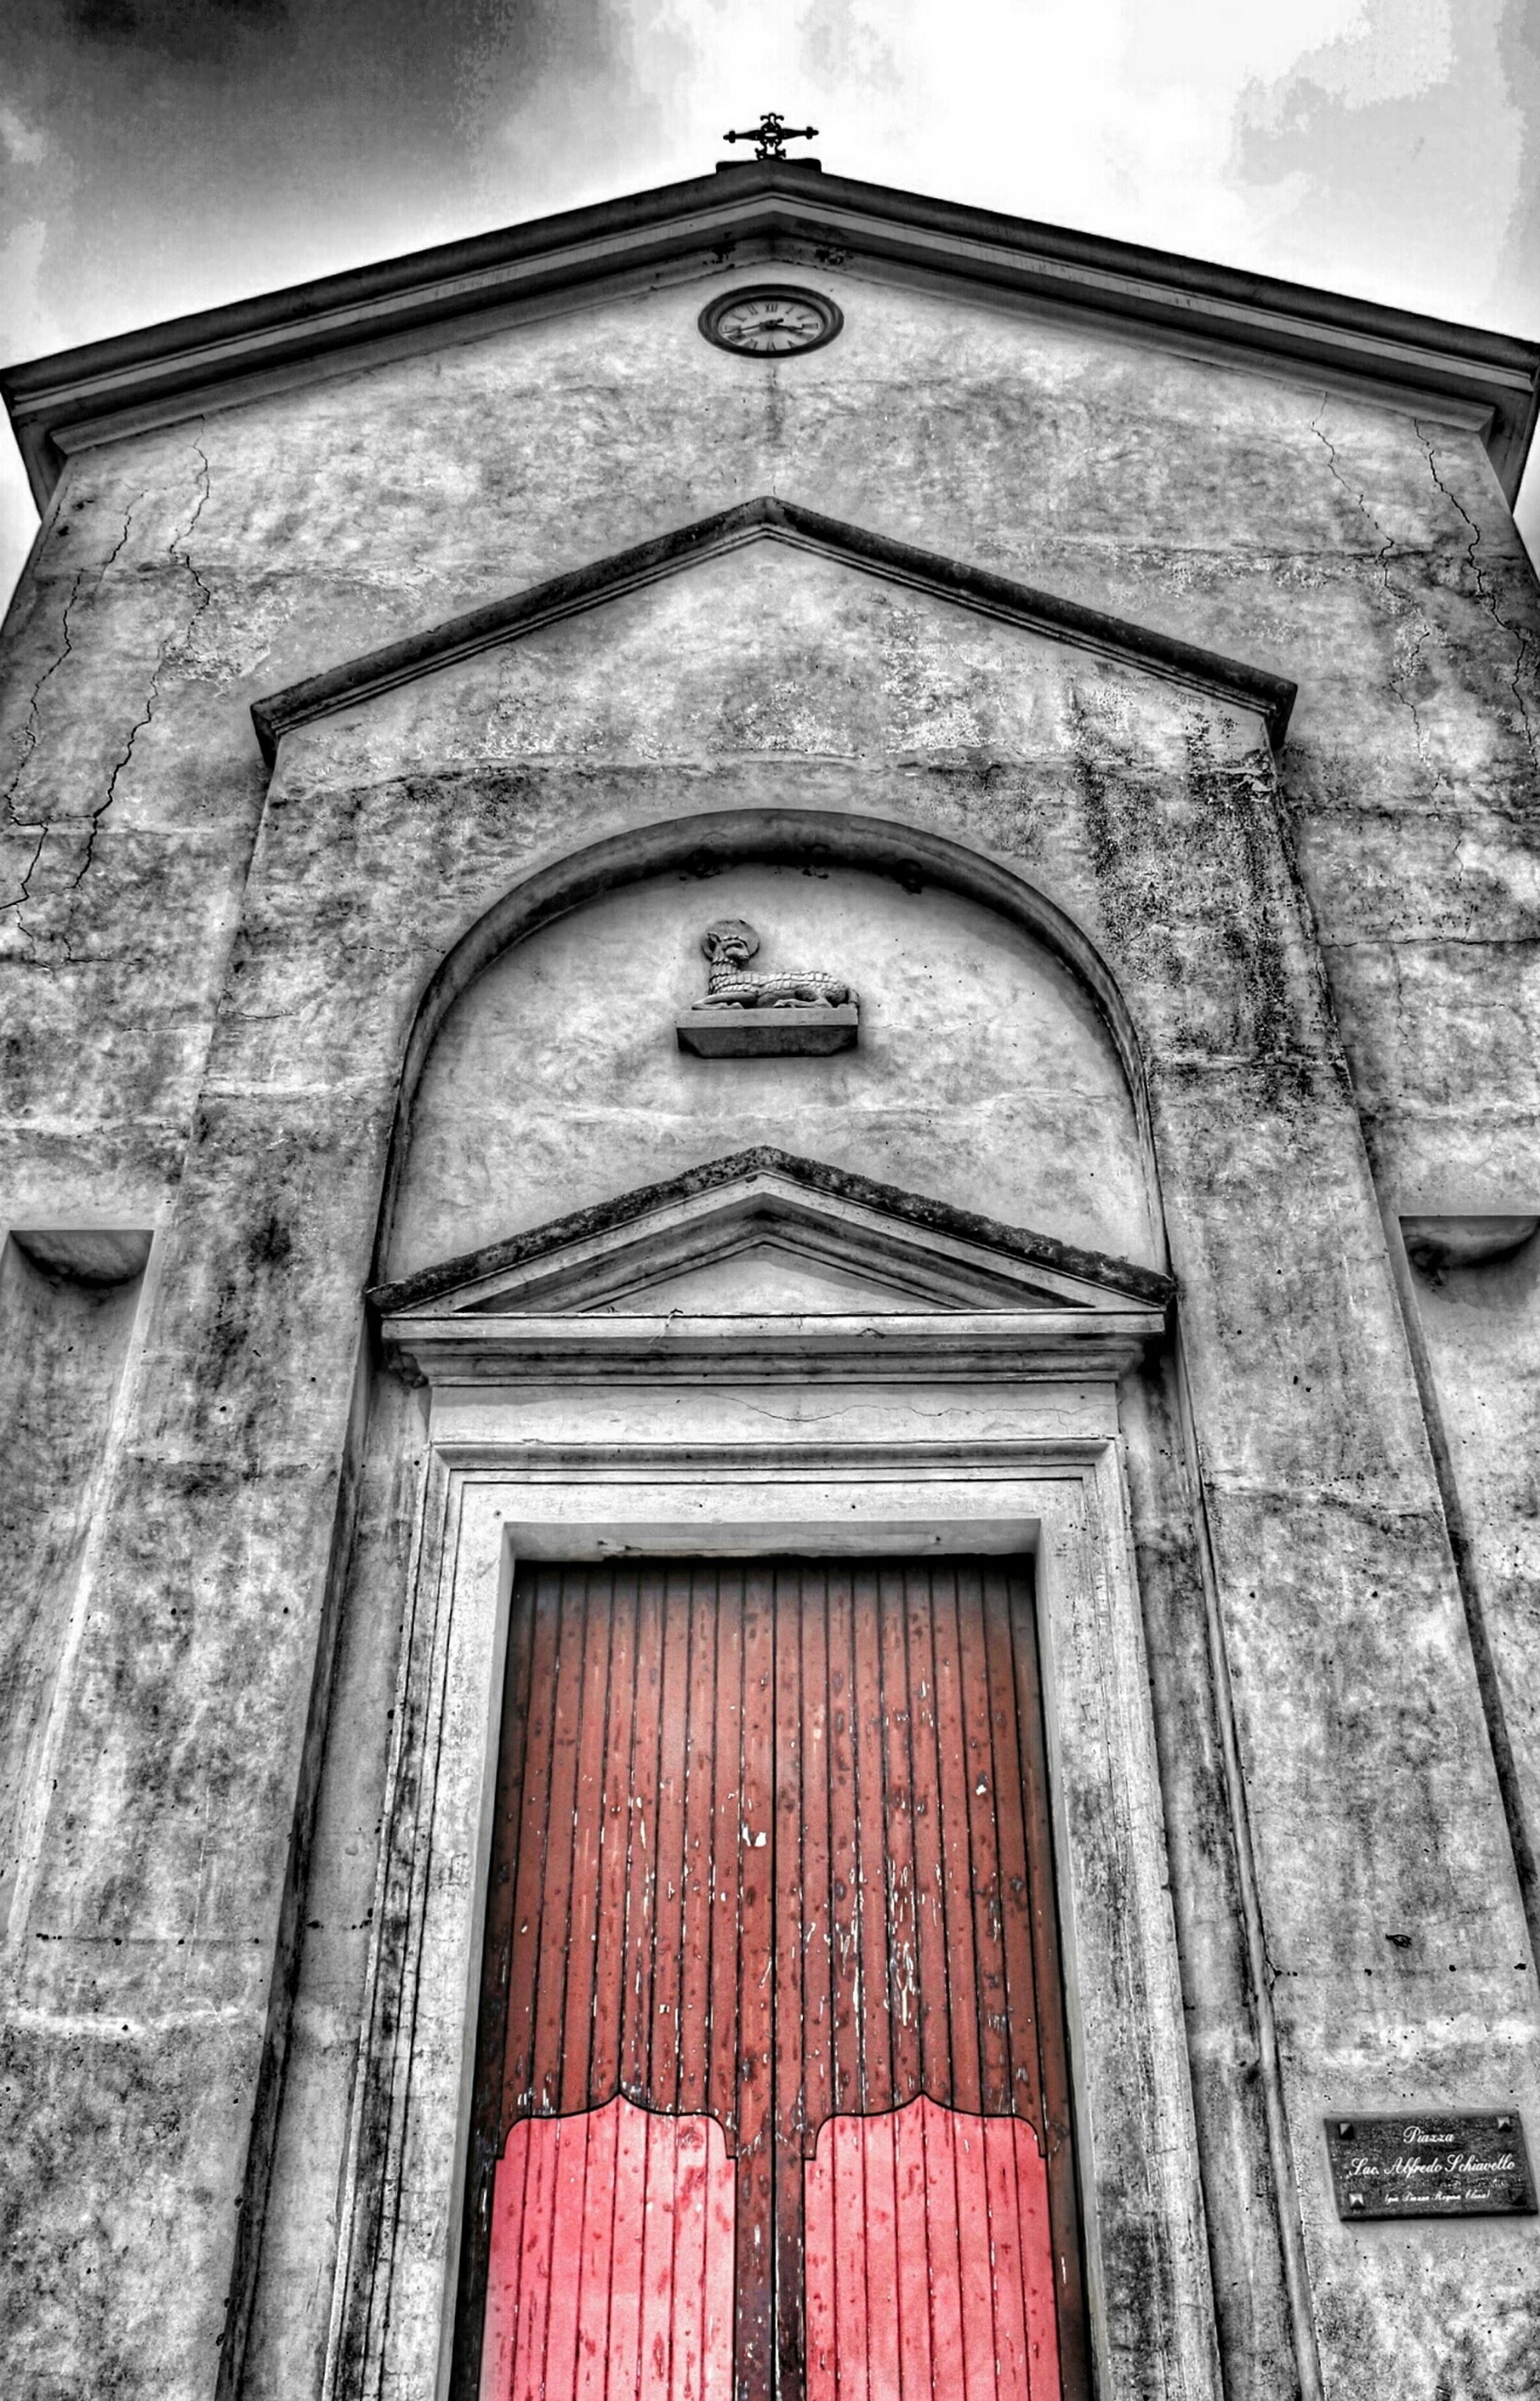 architecture, building exterior, built structure, low angle view, door, old, facade, arch, window, entrance, closed, history, church, day, outdoors, weathered, ornate, religion, no people